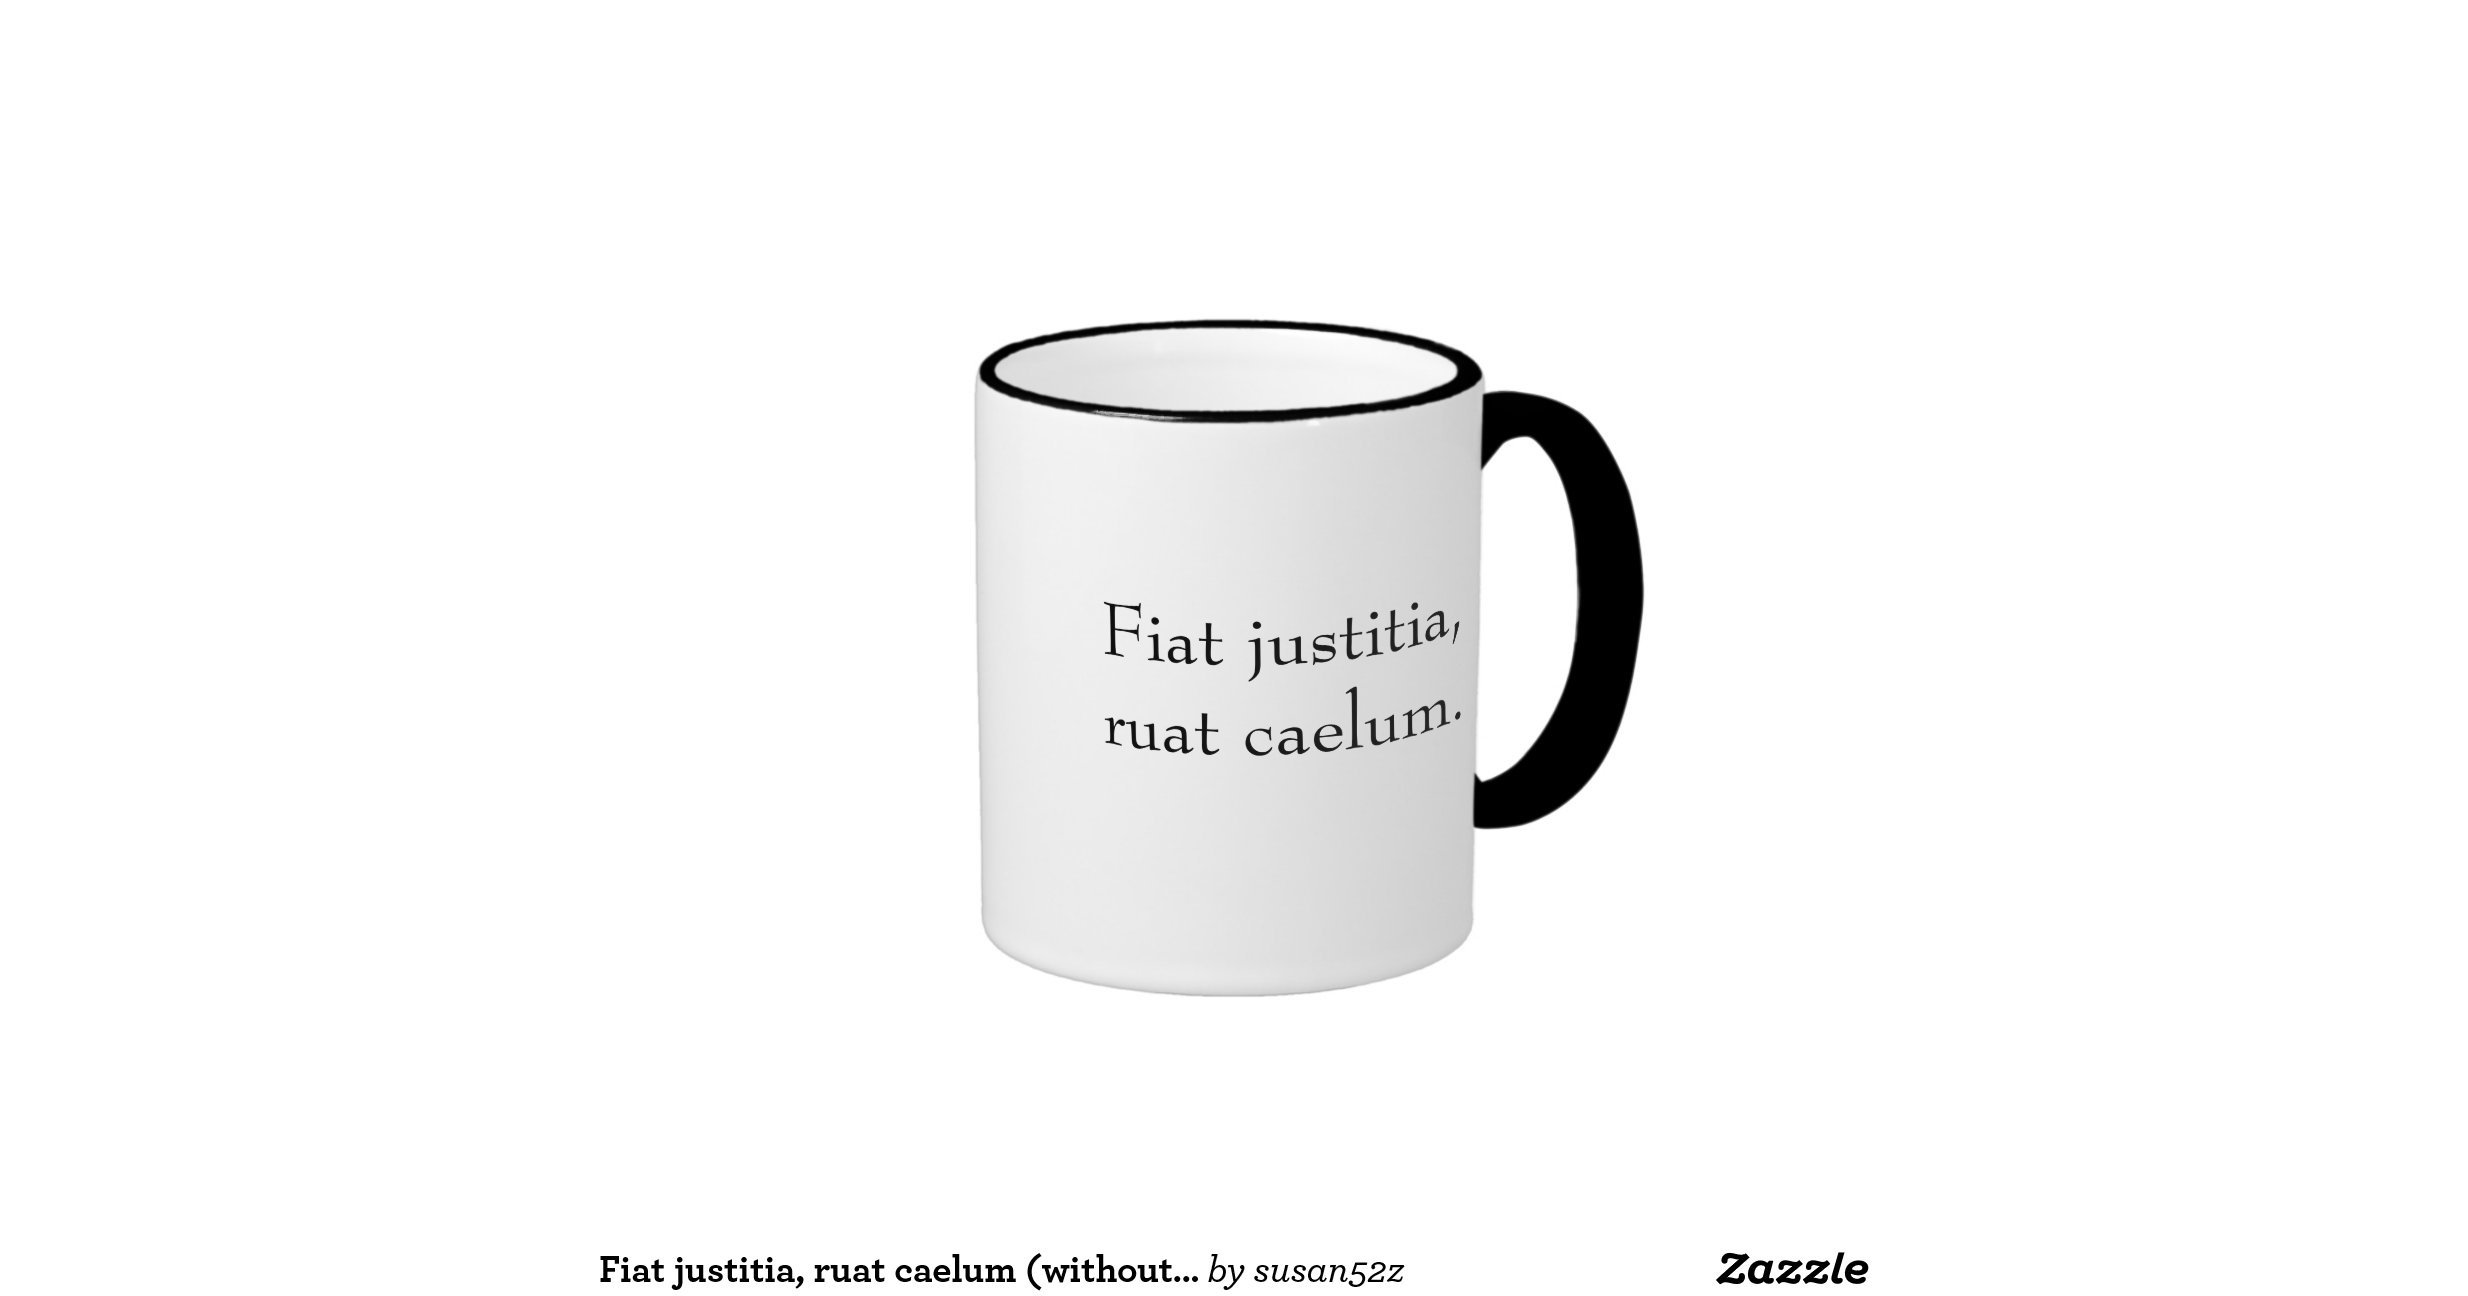 fiat justitia ruat caelum without translation ringer coffee mug. Cars Review. Best American Auto & Cars Review